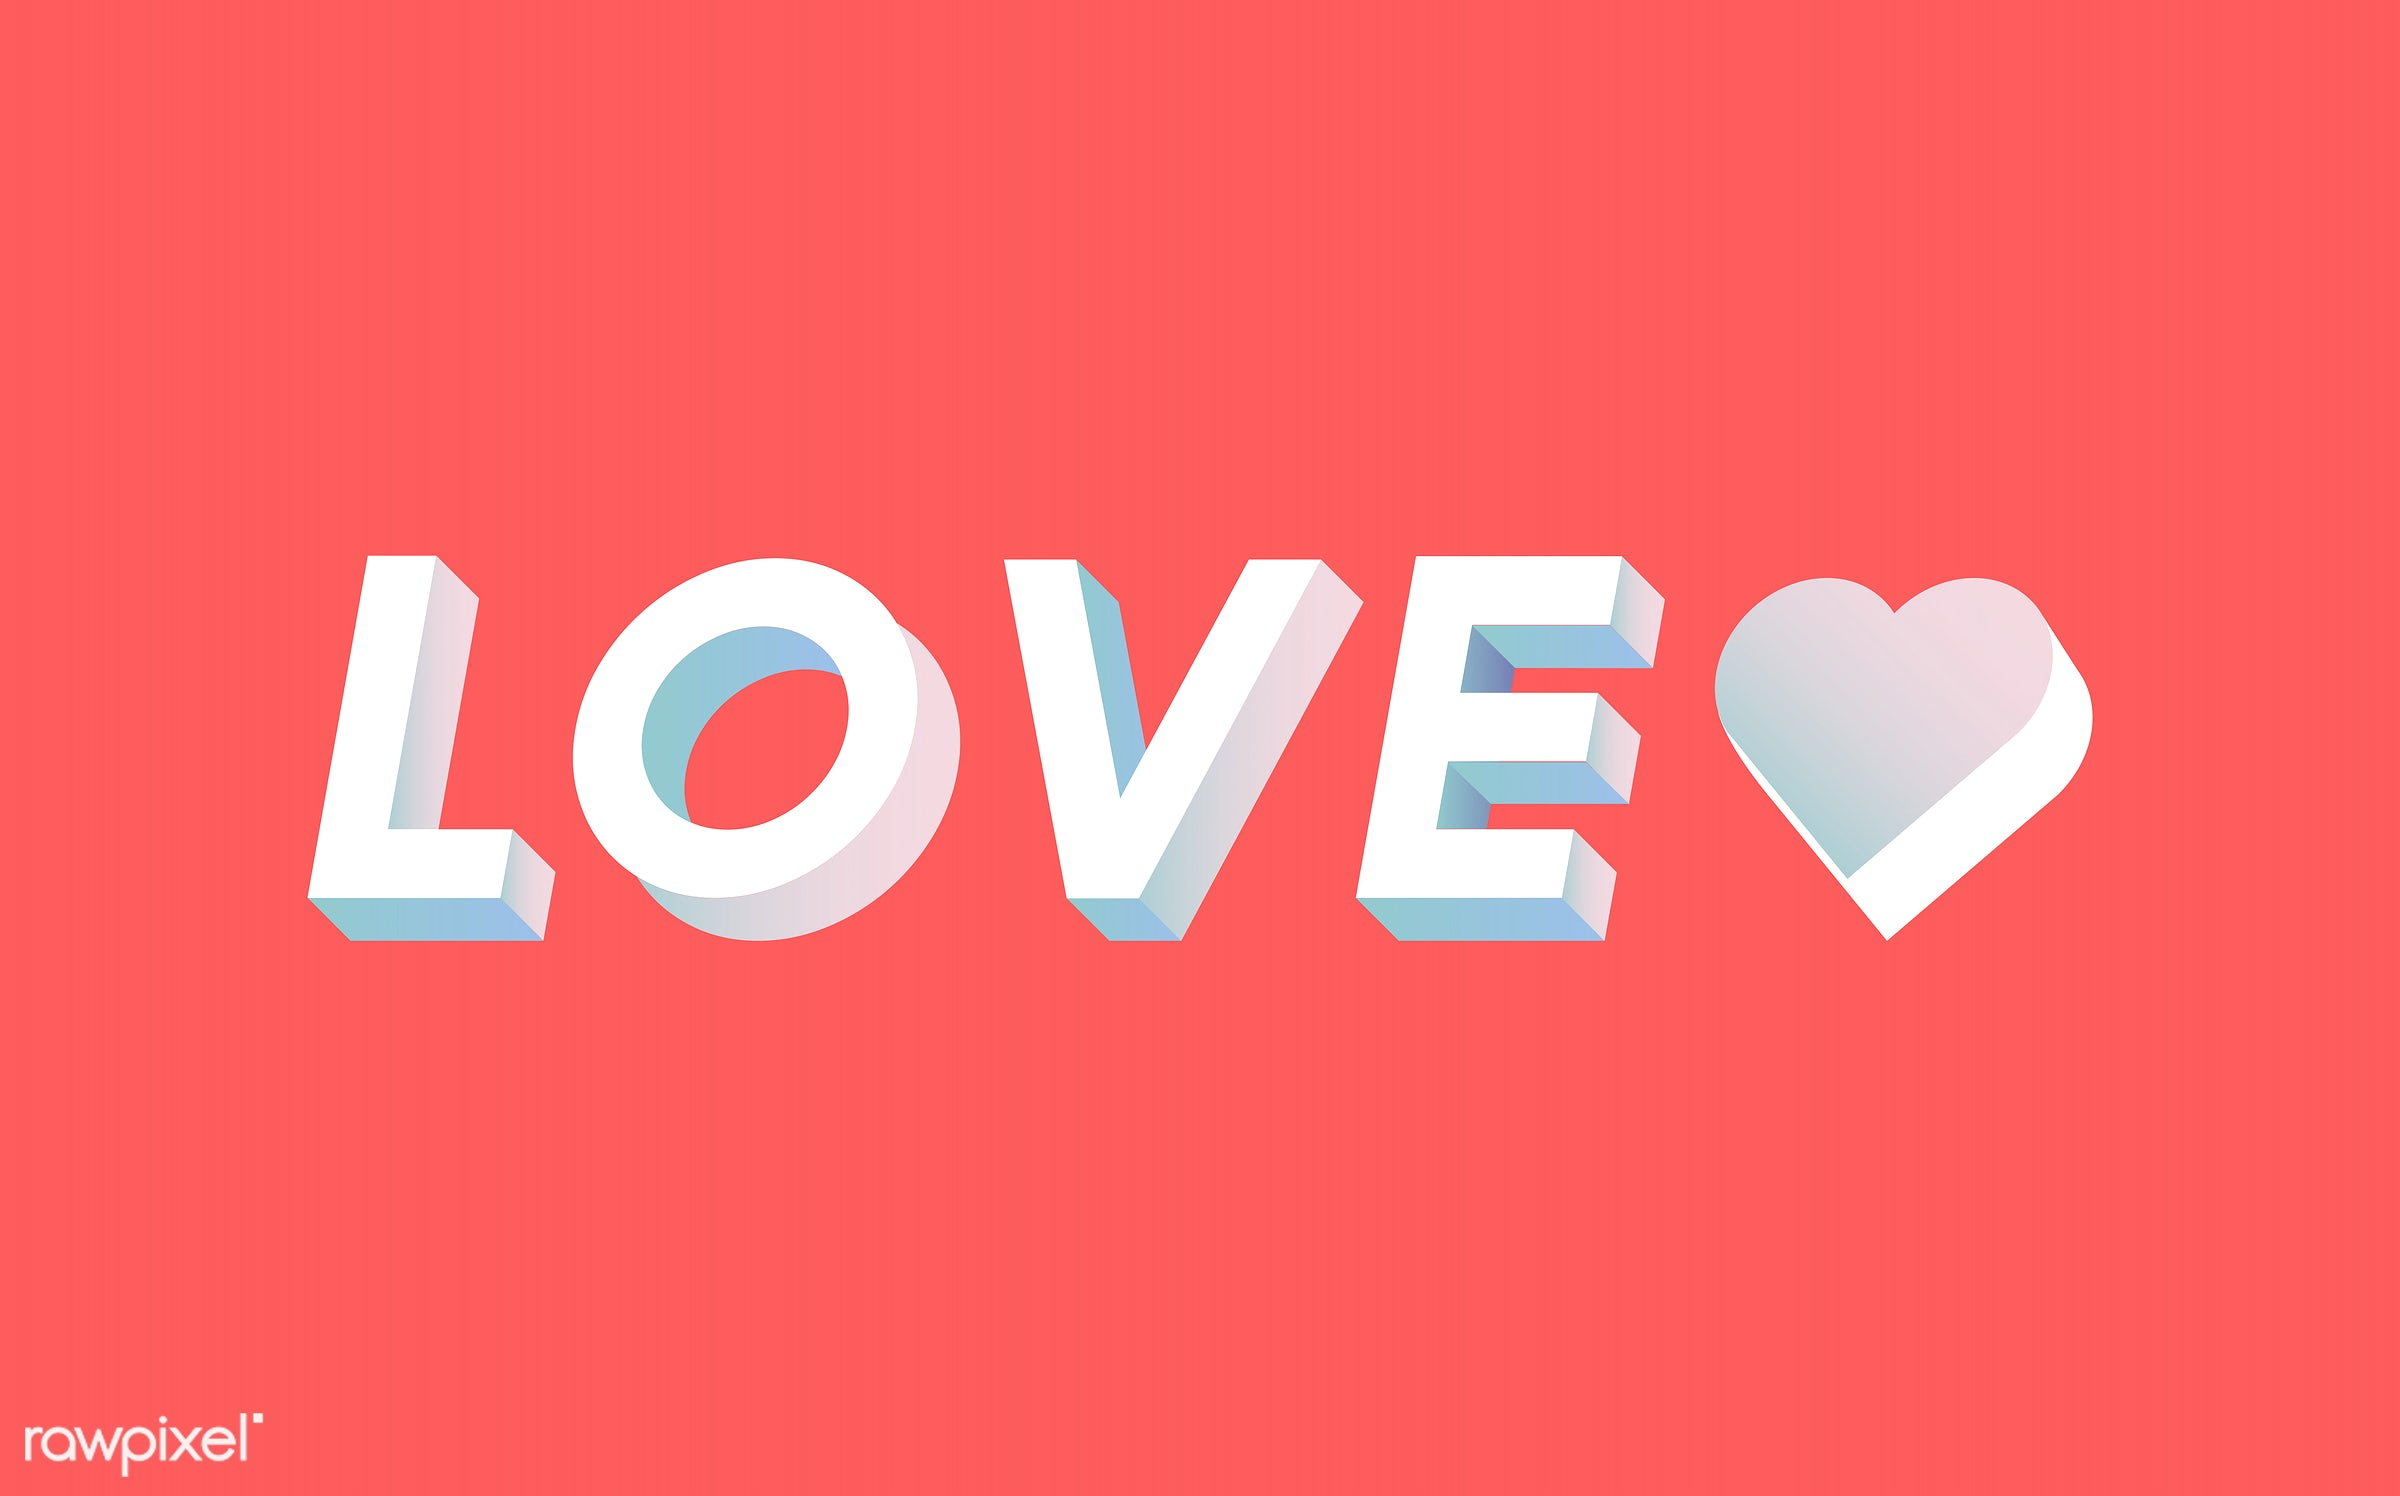 love, 3d, colorful, graphic, illustration, in love, neon, red, romance, three dimensional, valentines, vector, white, word